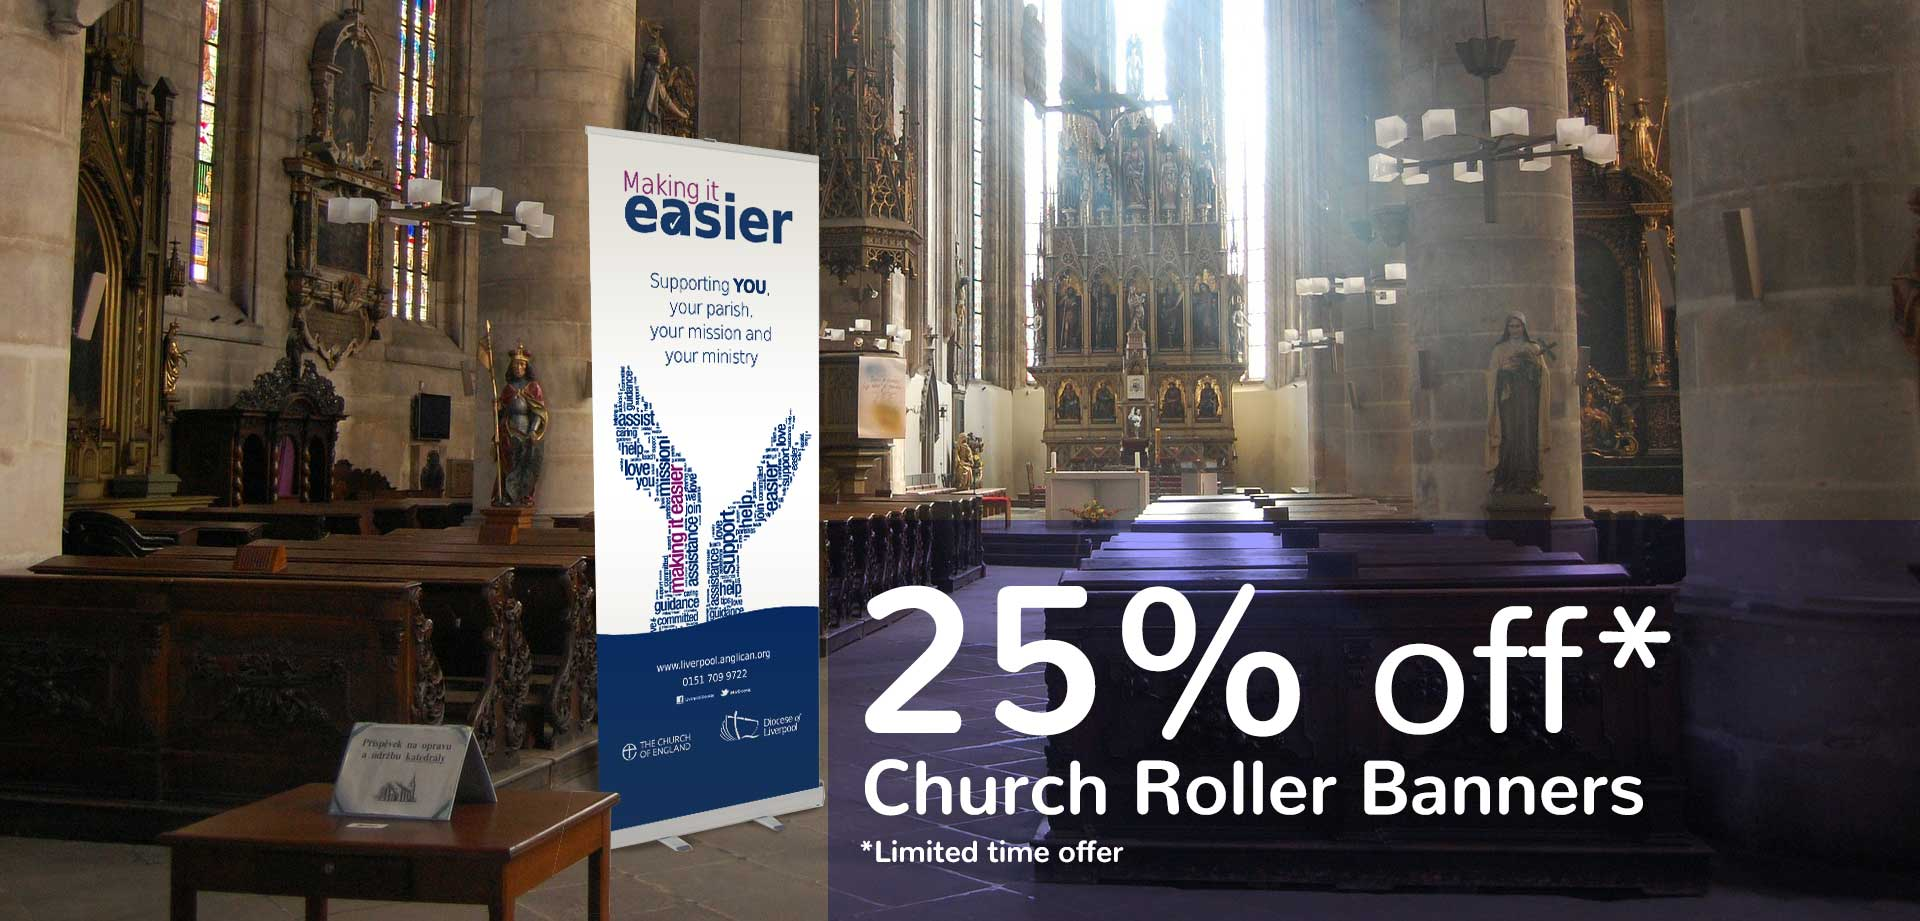 church banner 25off 1 church retractable banners roller banners    Image of church banner 25off 1